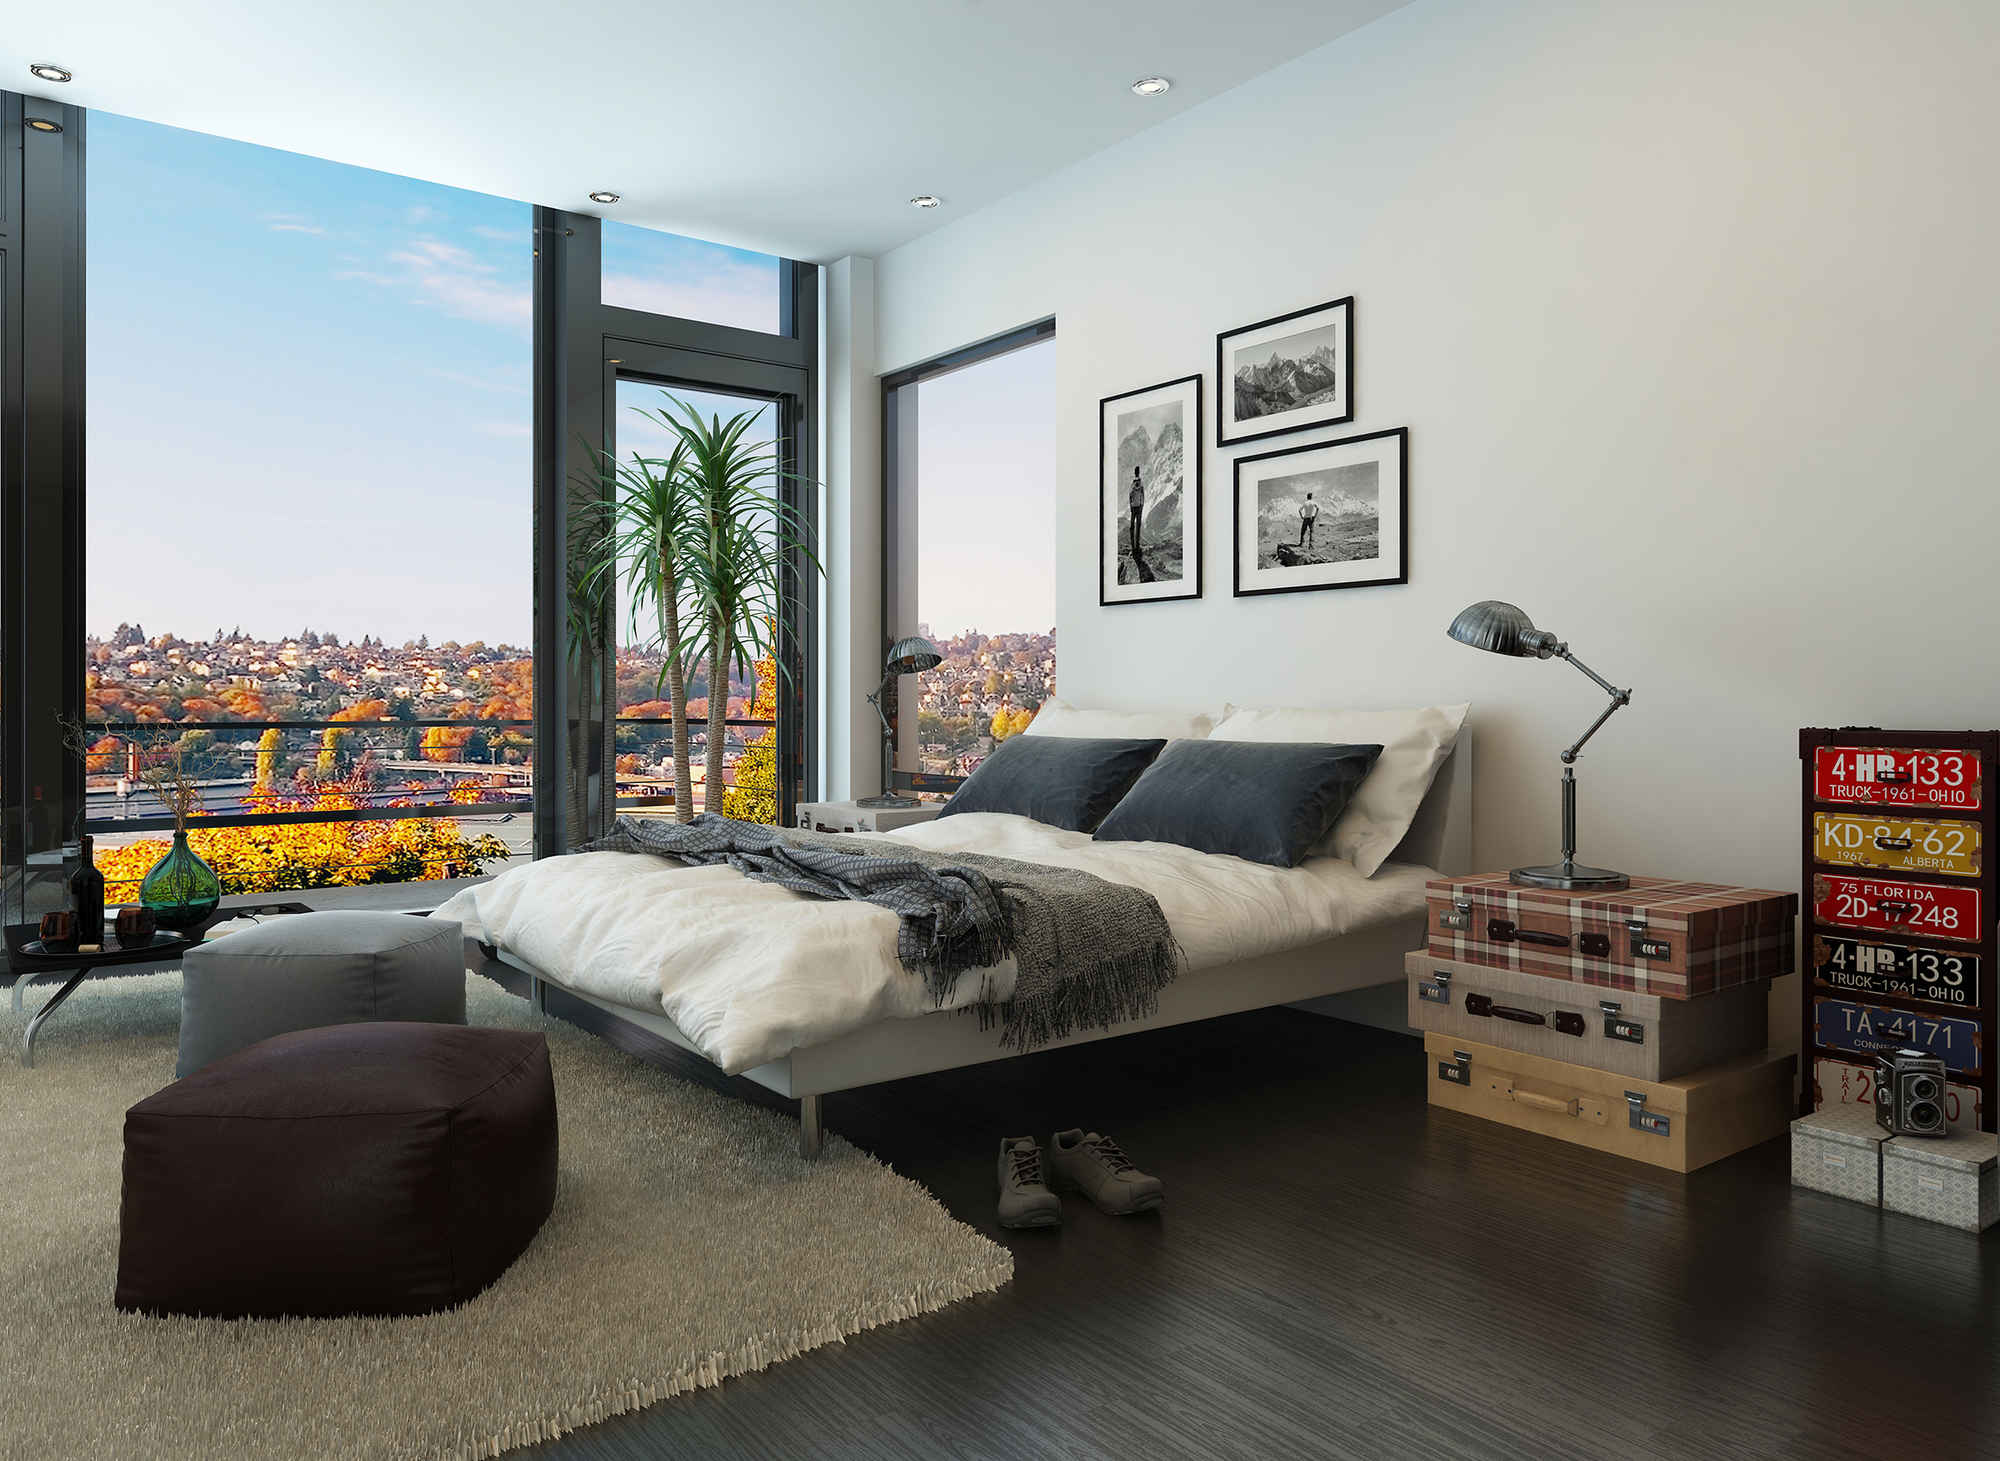 5 Ways To Make Your Small Bedroom Feel Bigger | HuffPost on Guys Small Bedroom Ideas  id=61633